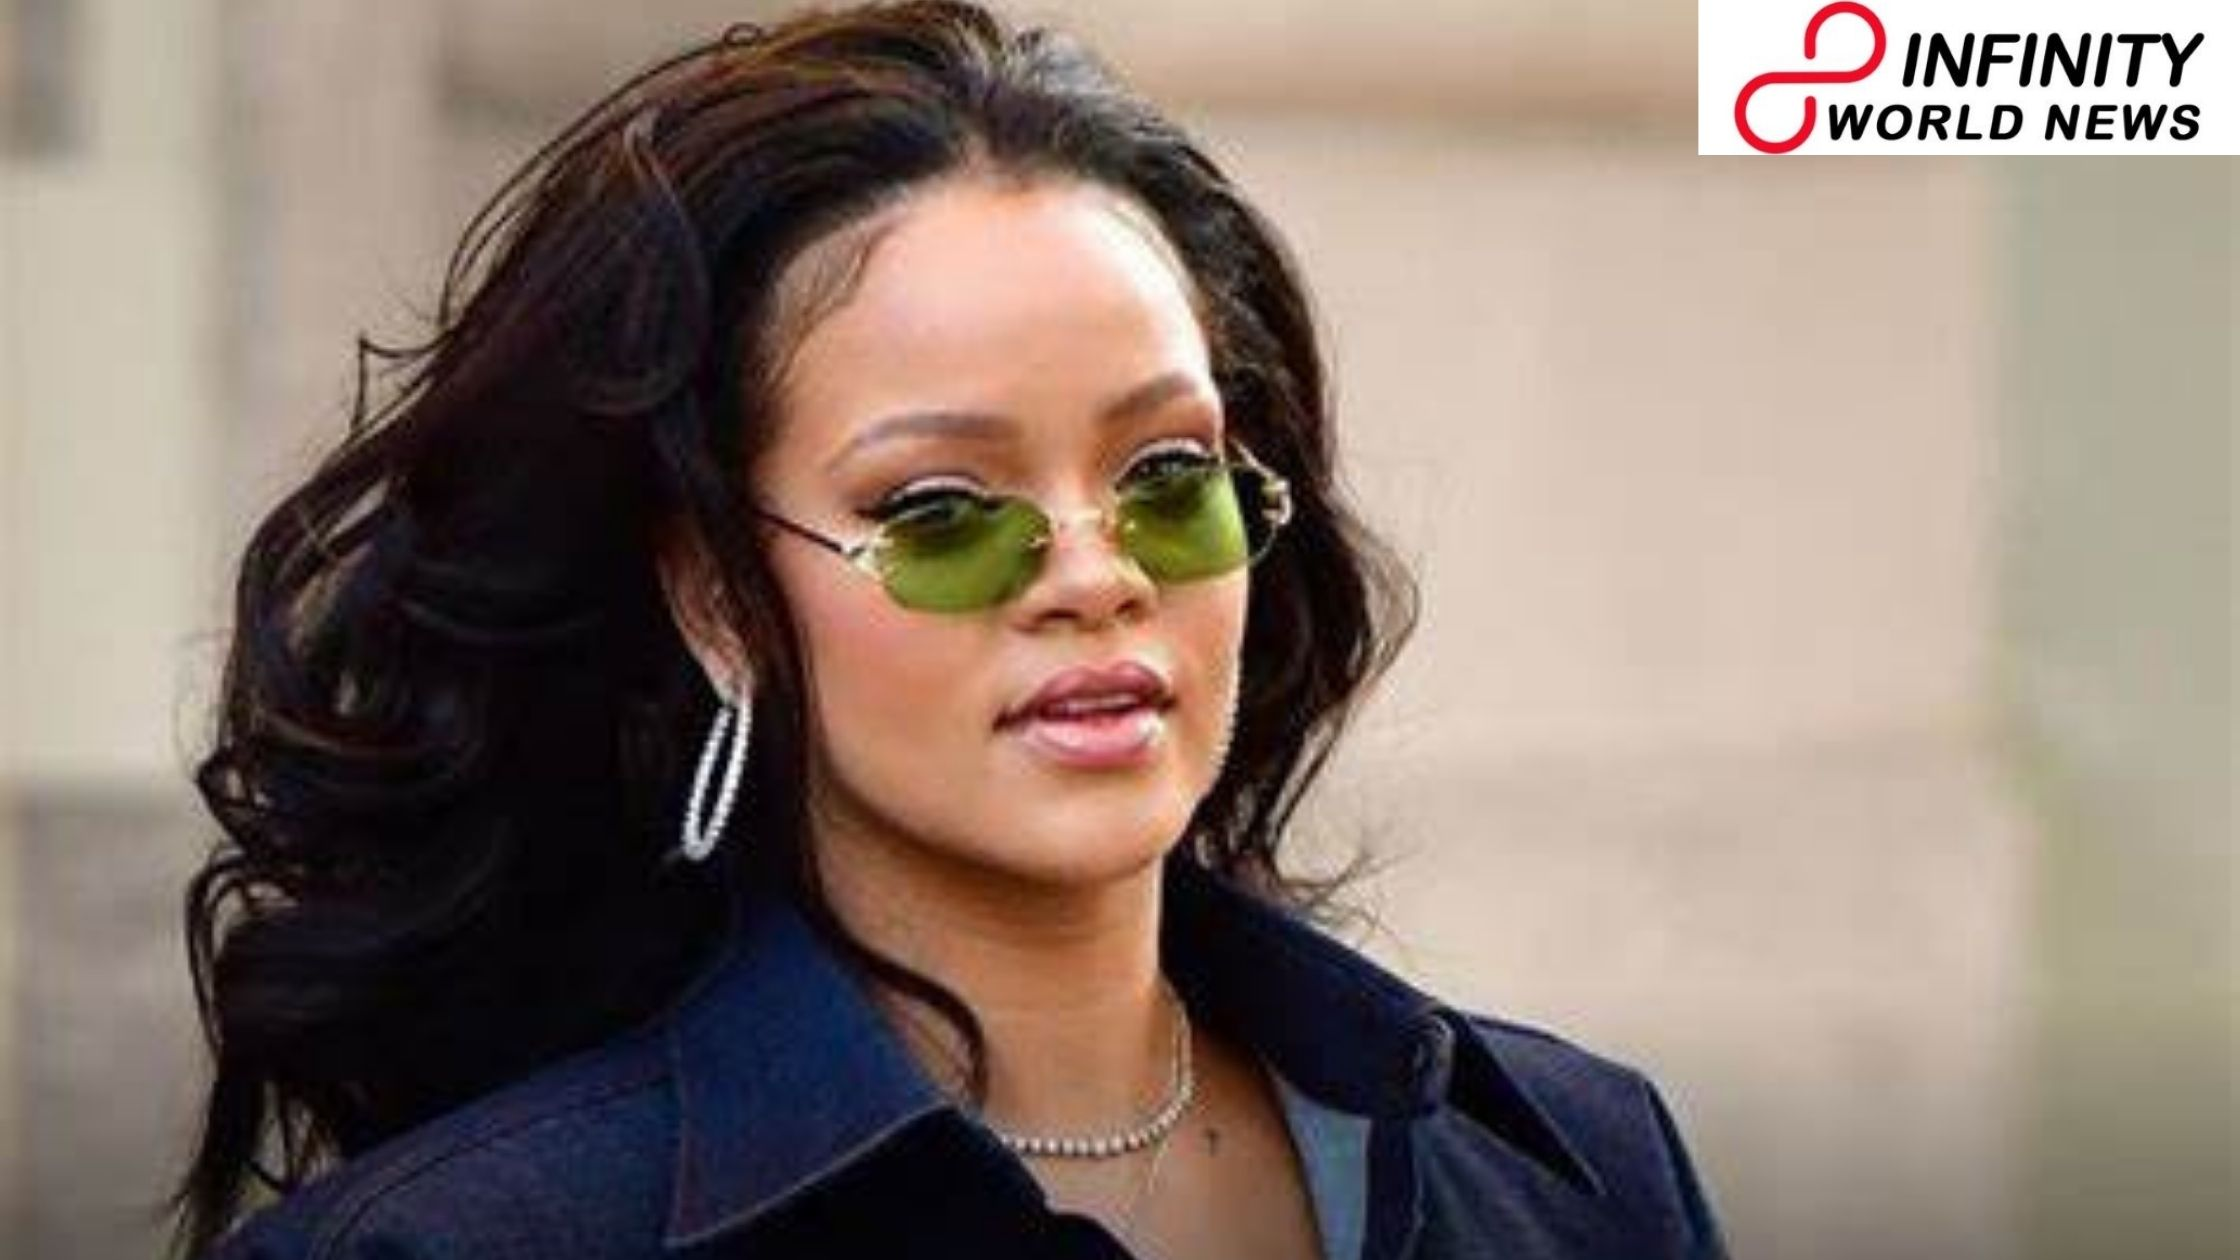 Farmers' protest: Rihanna tweet enrages Indian government